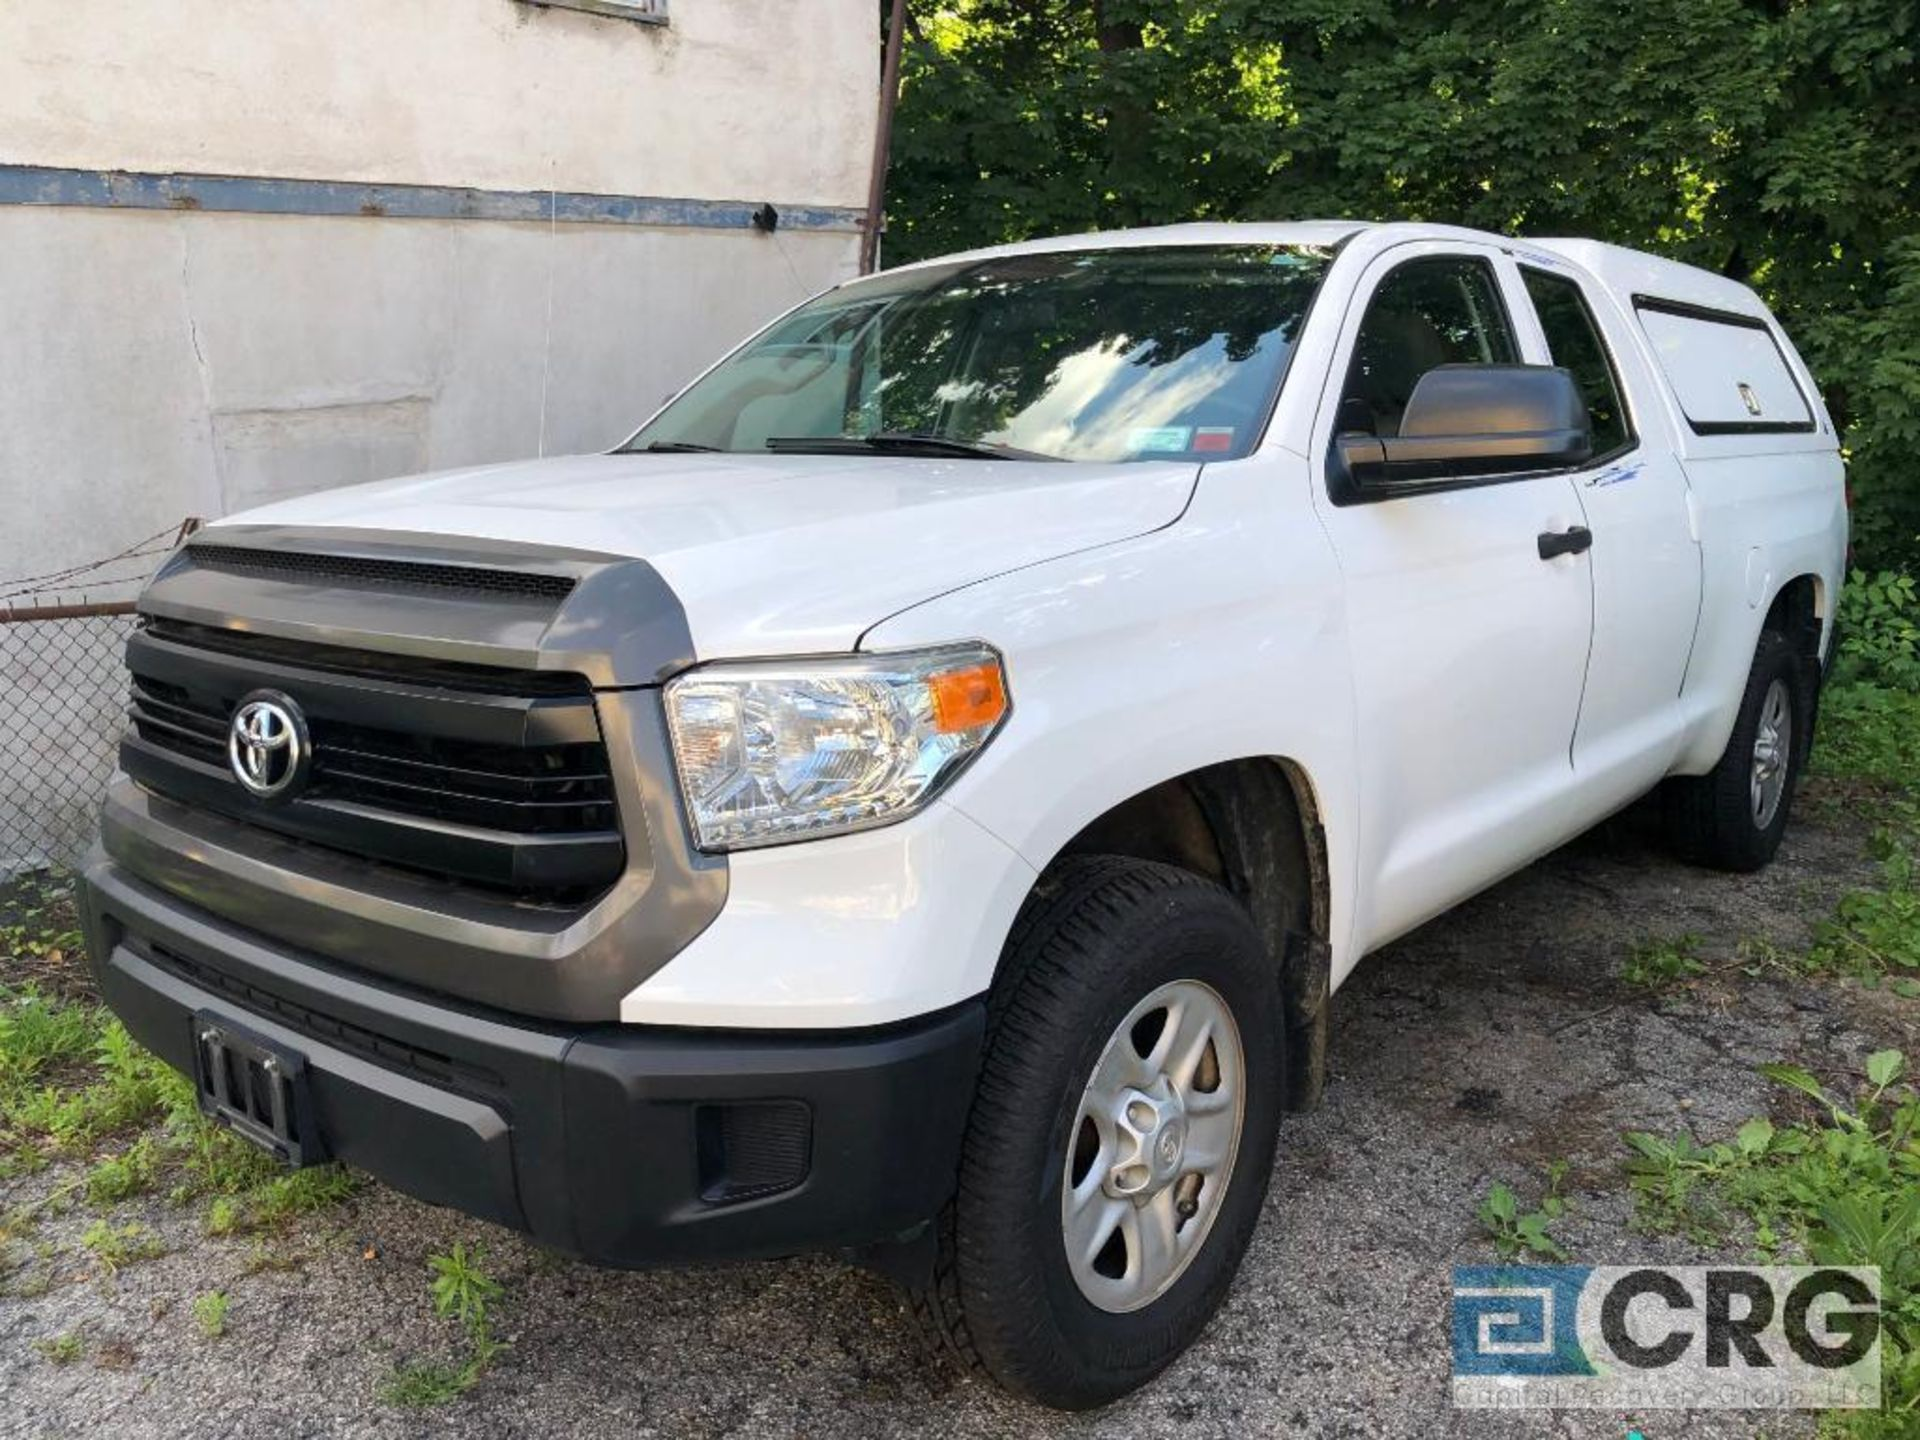 Lot 334 - 2016 Toyota Tundra 4X4 double cab pickup truck with bed cap and toolbox, 50145 miles, I-Force 4.6